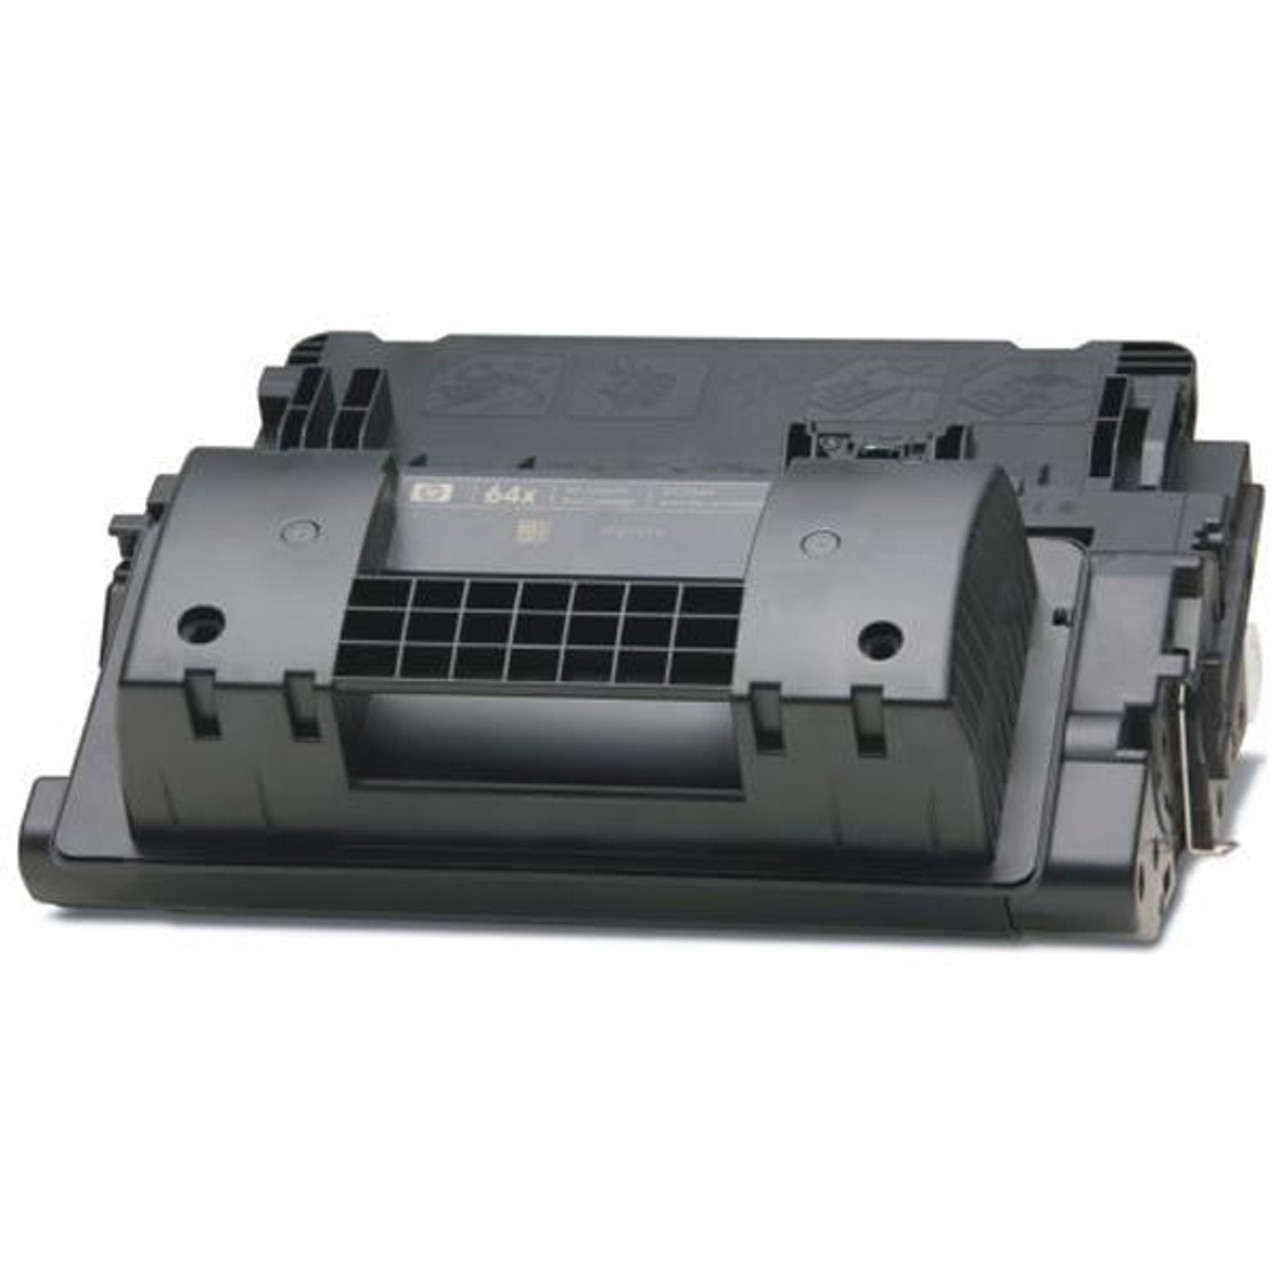 HP P4015 P515 High Yield MICR Toner Cartridge - New compatible